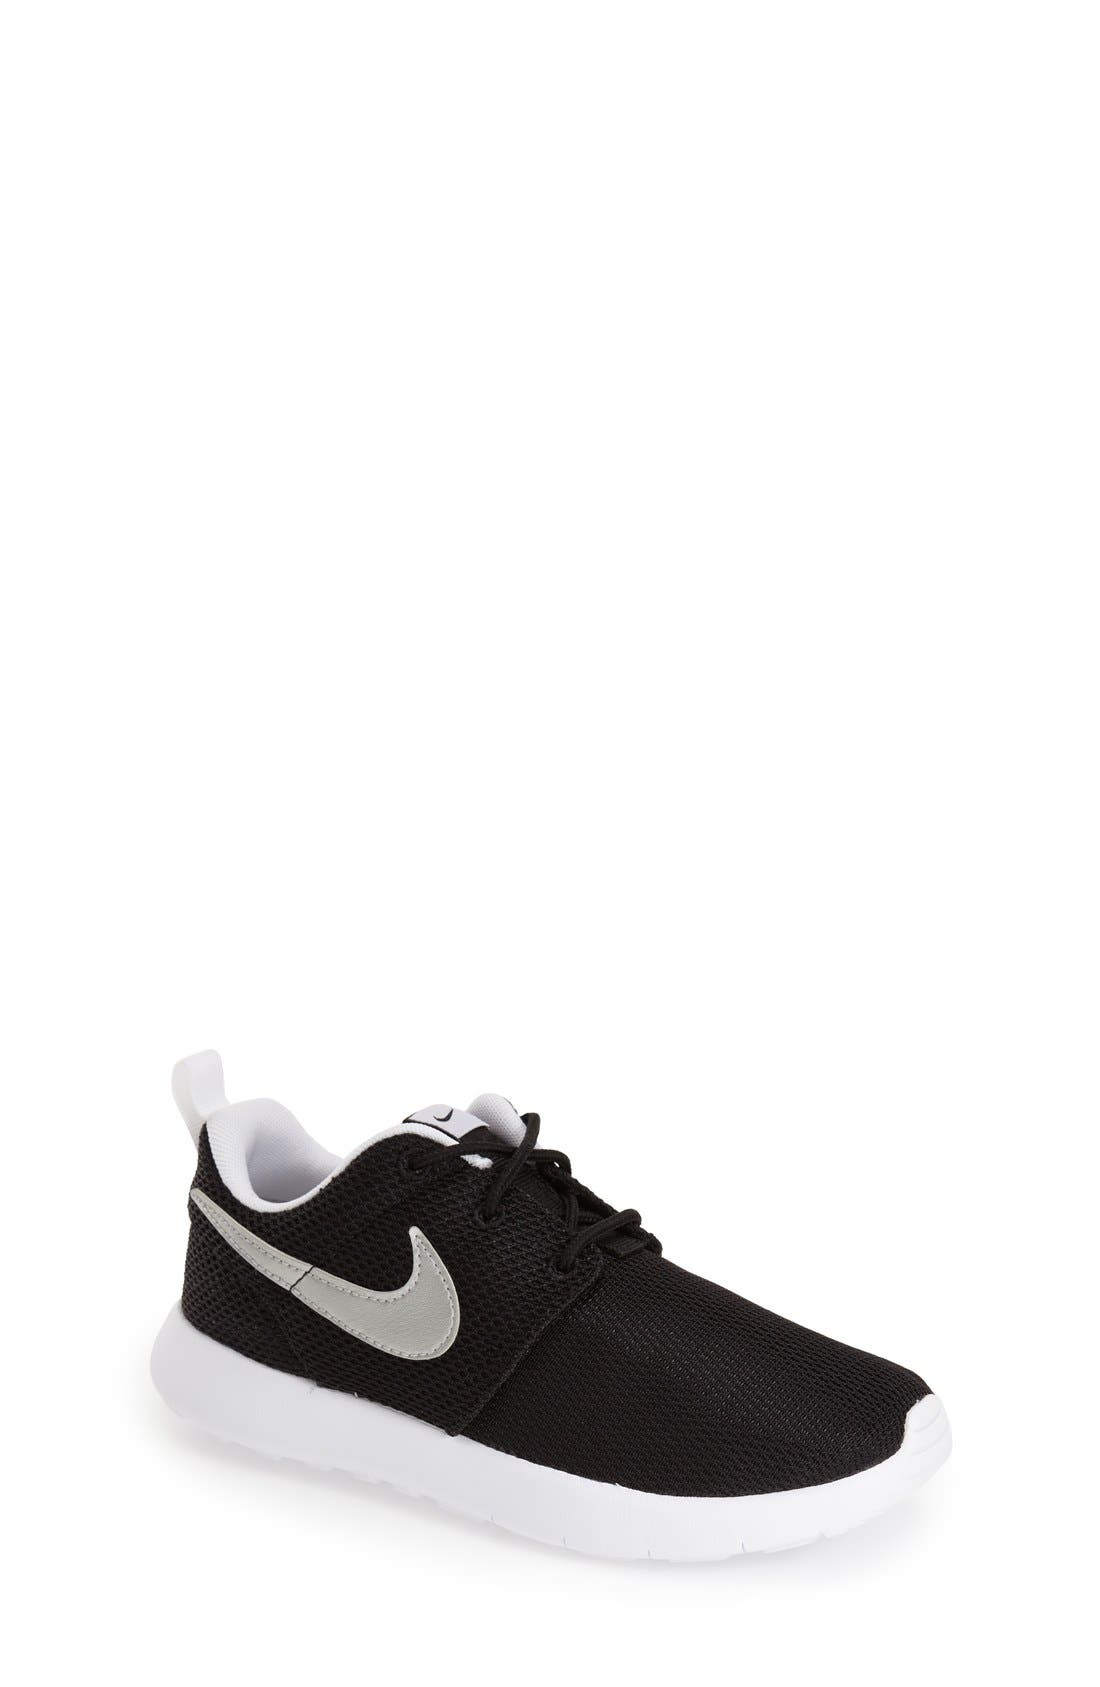 Roshe Run Sneaker,                         Main,                         color,